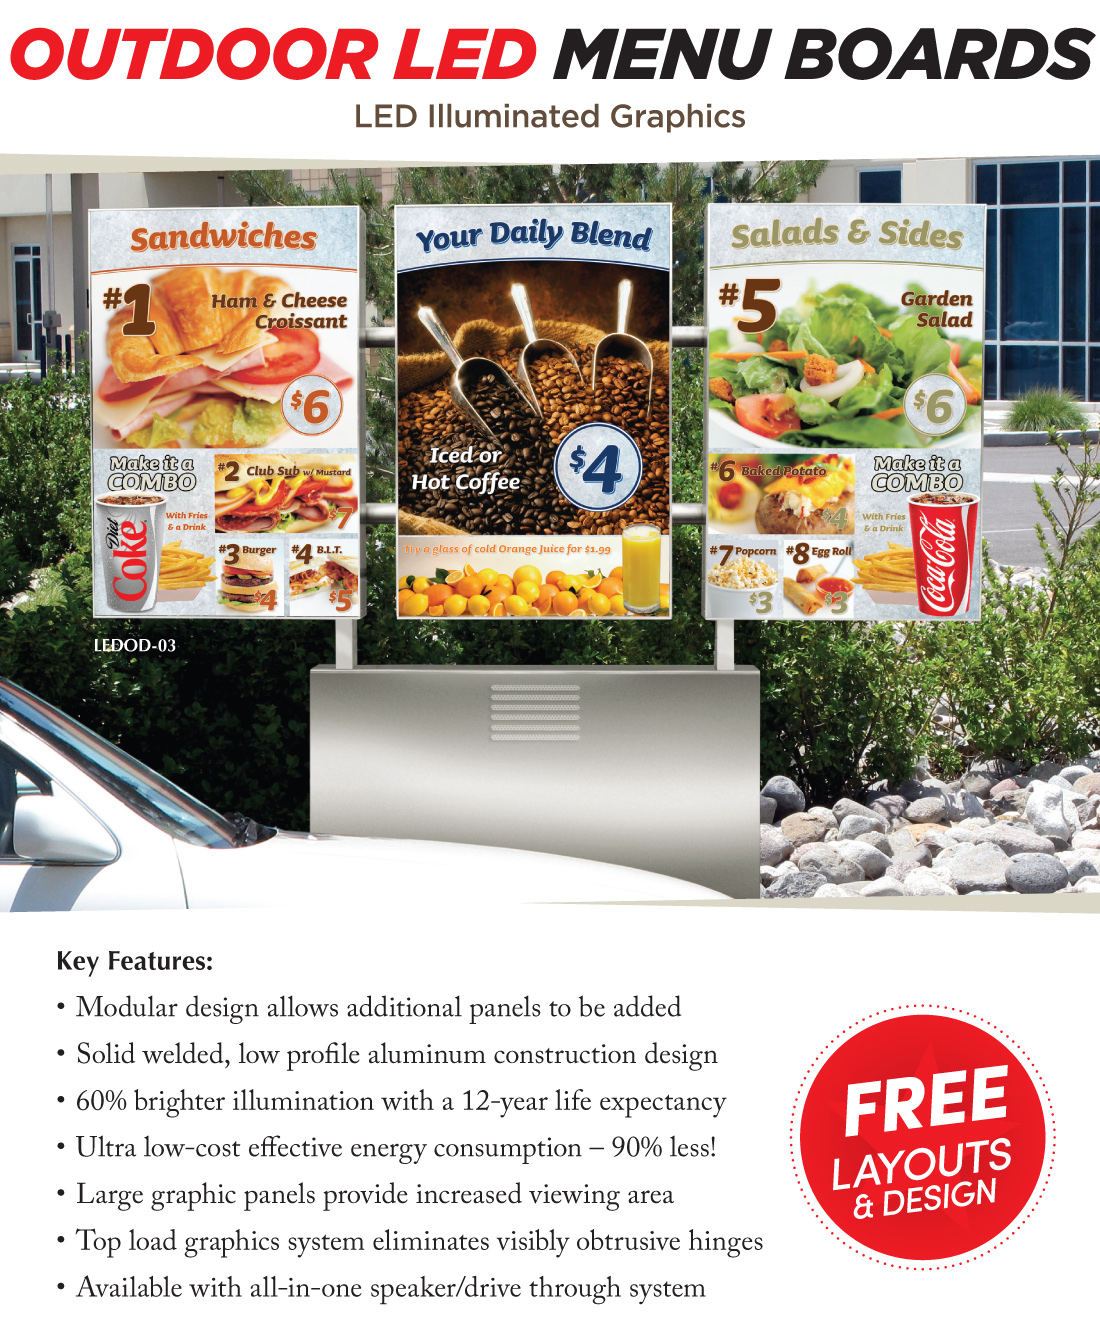 Outdoor LED Menu Boards - Coca Cola